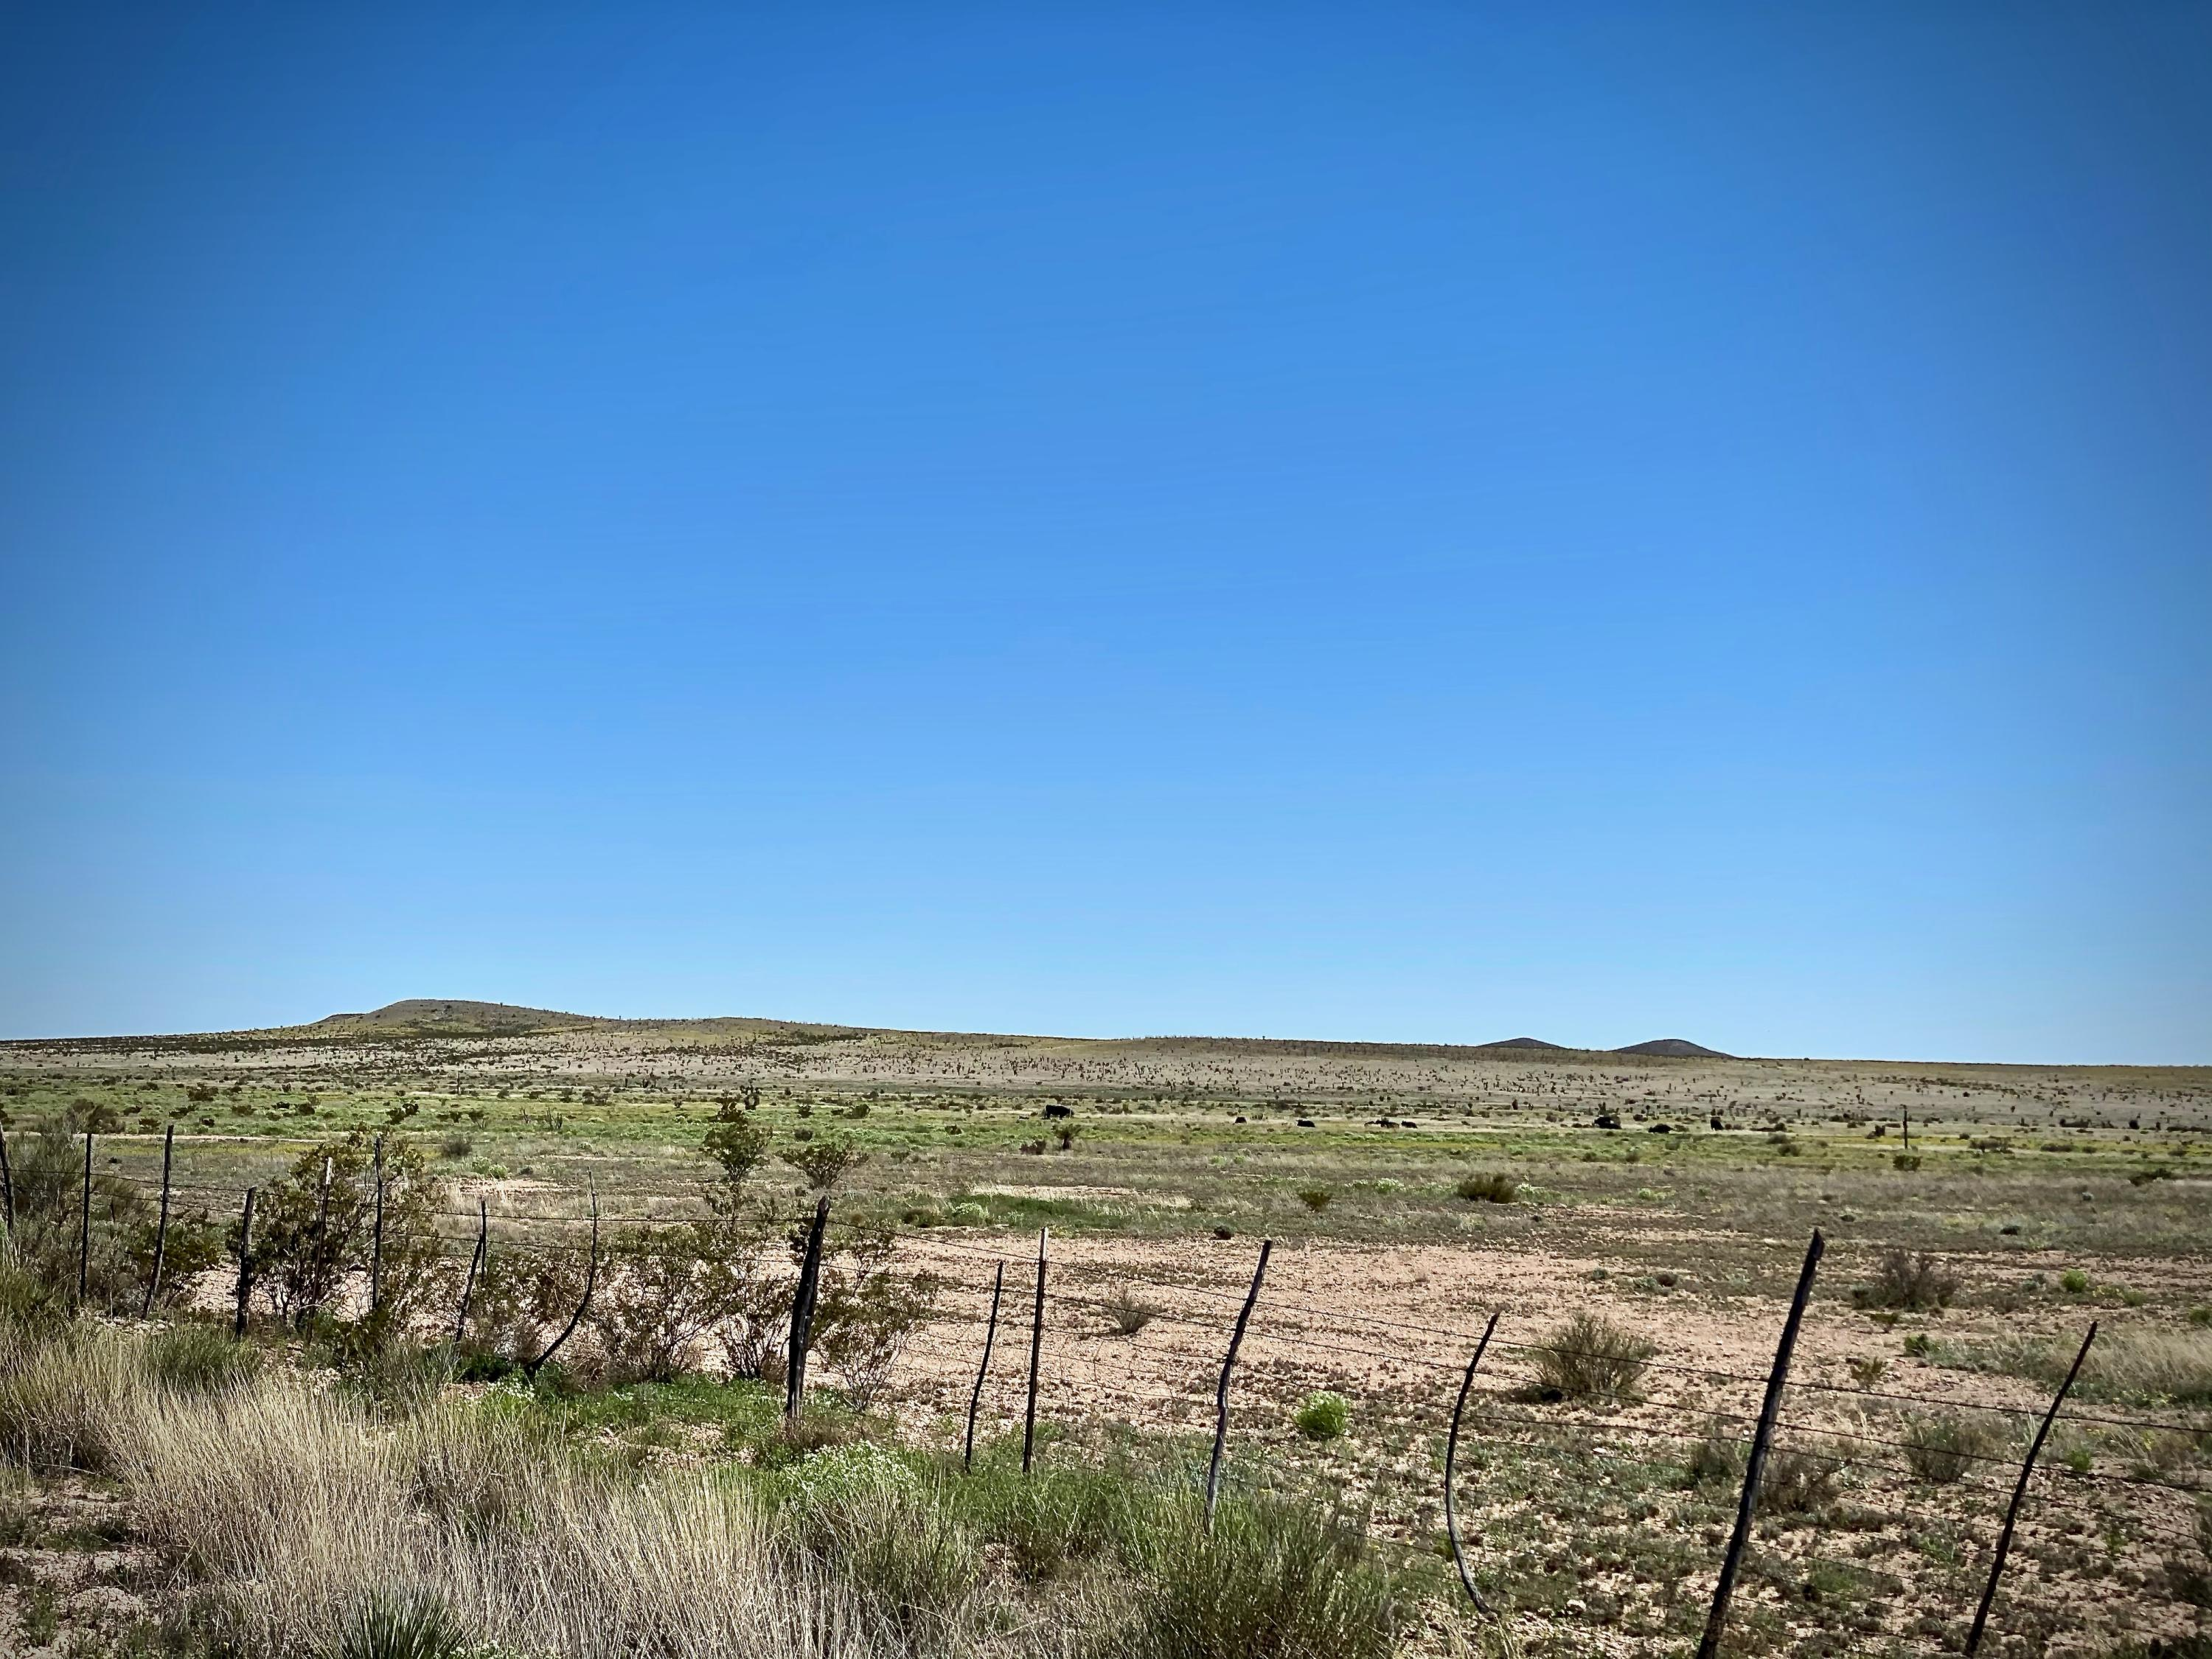 0 Highway 62, Unincorporated, TX 99999 - Unincorporated, TX real estate listing